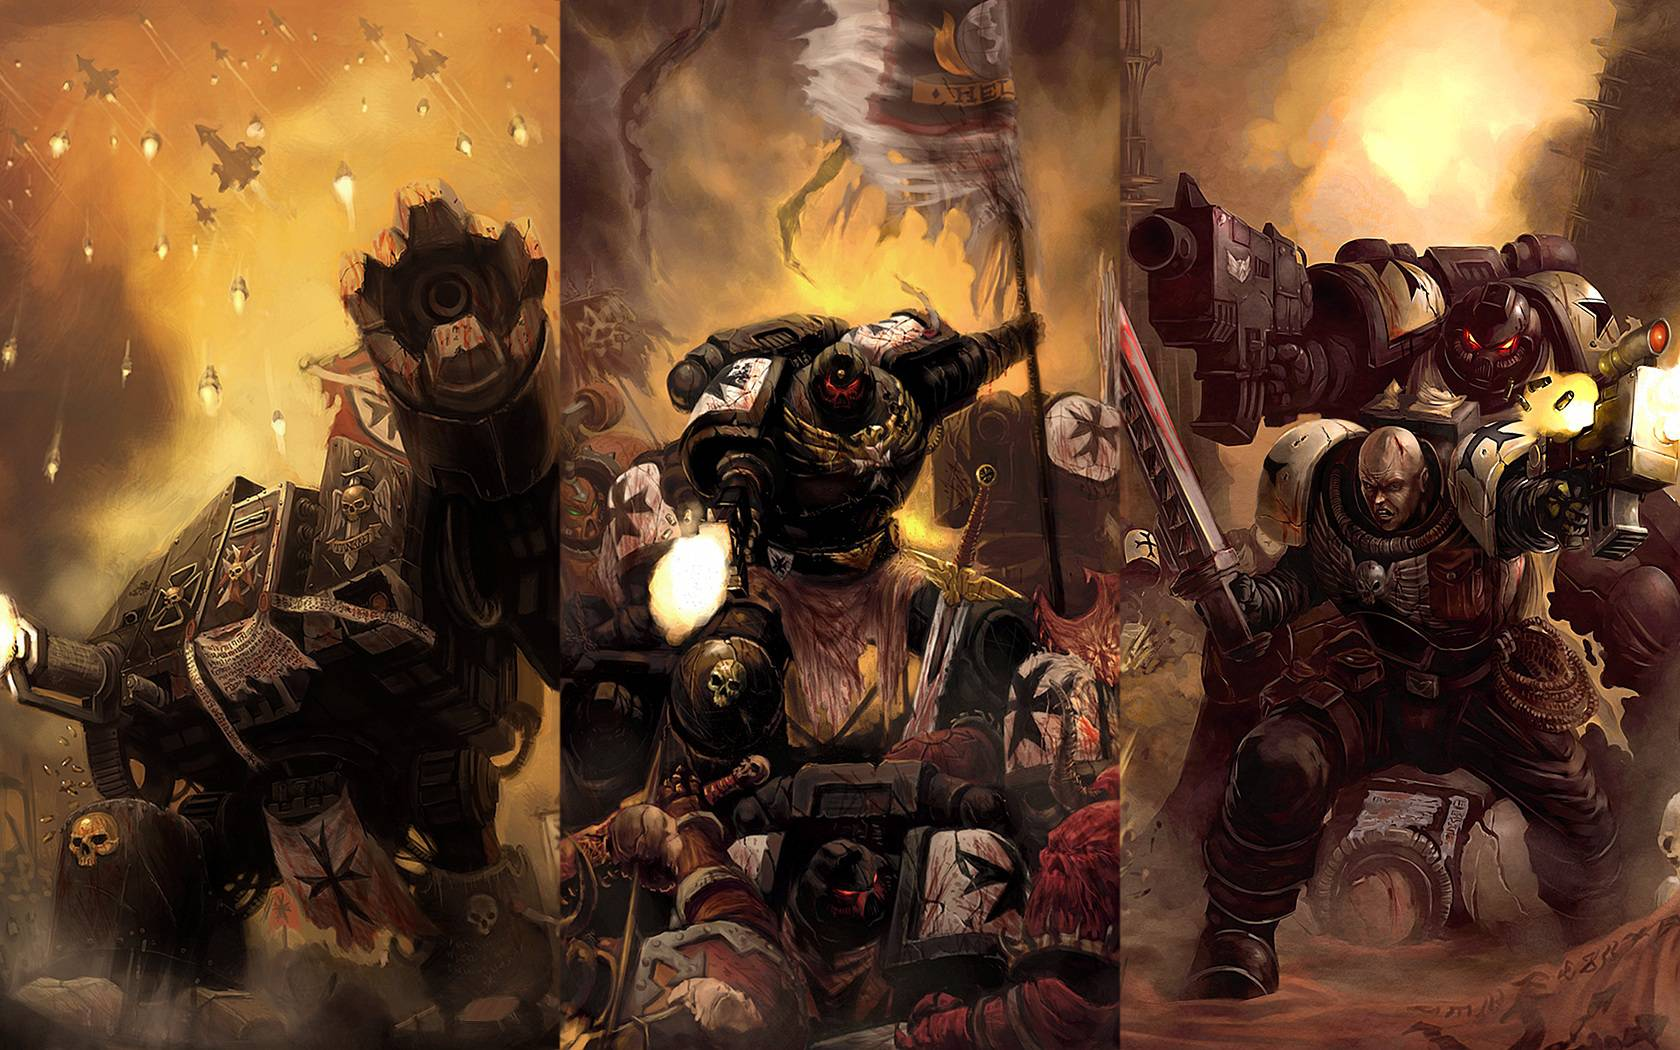 Warhammer 40k wallpaper [2] HQ WALLPAPER   23035 1680x1050